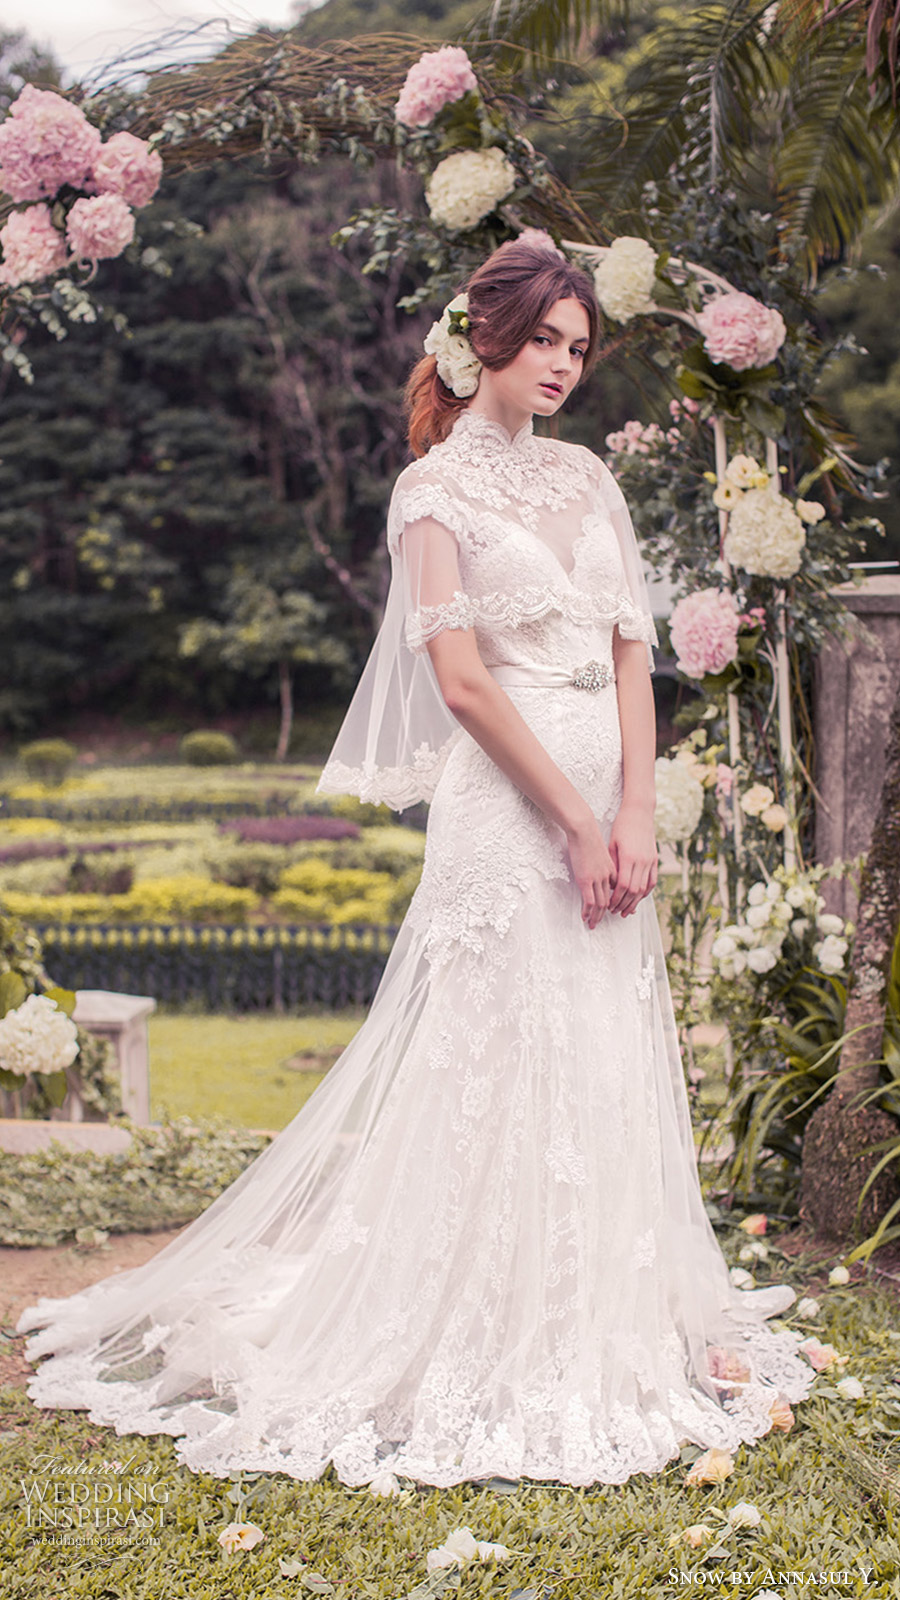 snow annasul y 2017 bridal (sa3265b with cape) cap sleeves illusion bateau neck sweetheart trumpet lace wedding dress mv